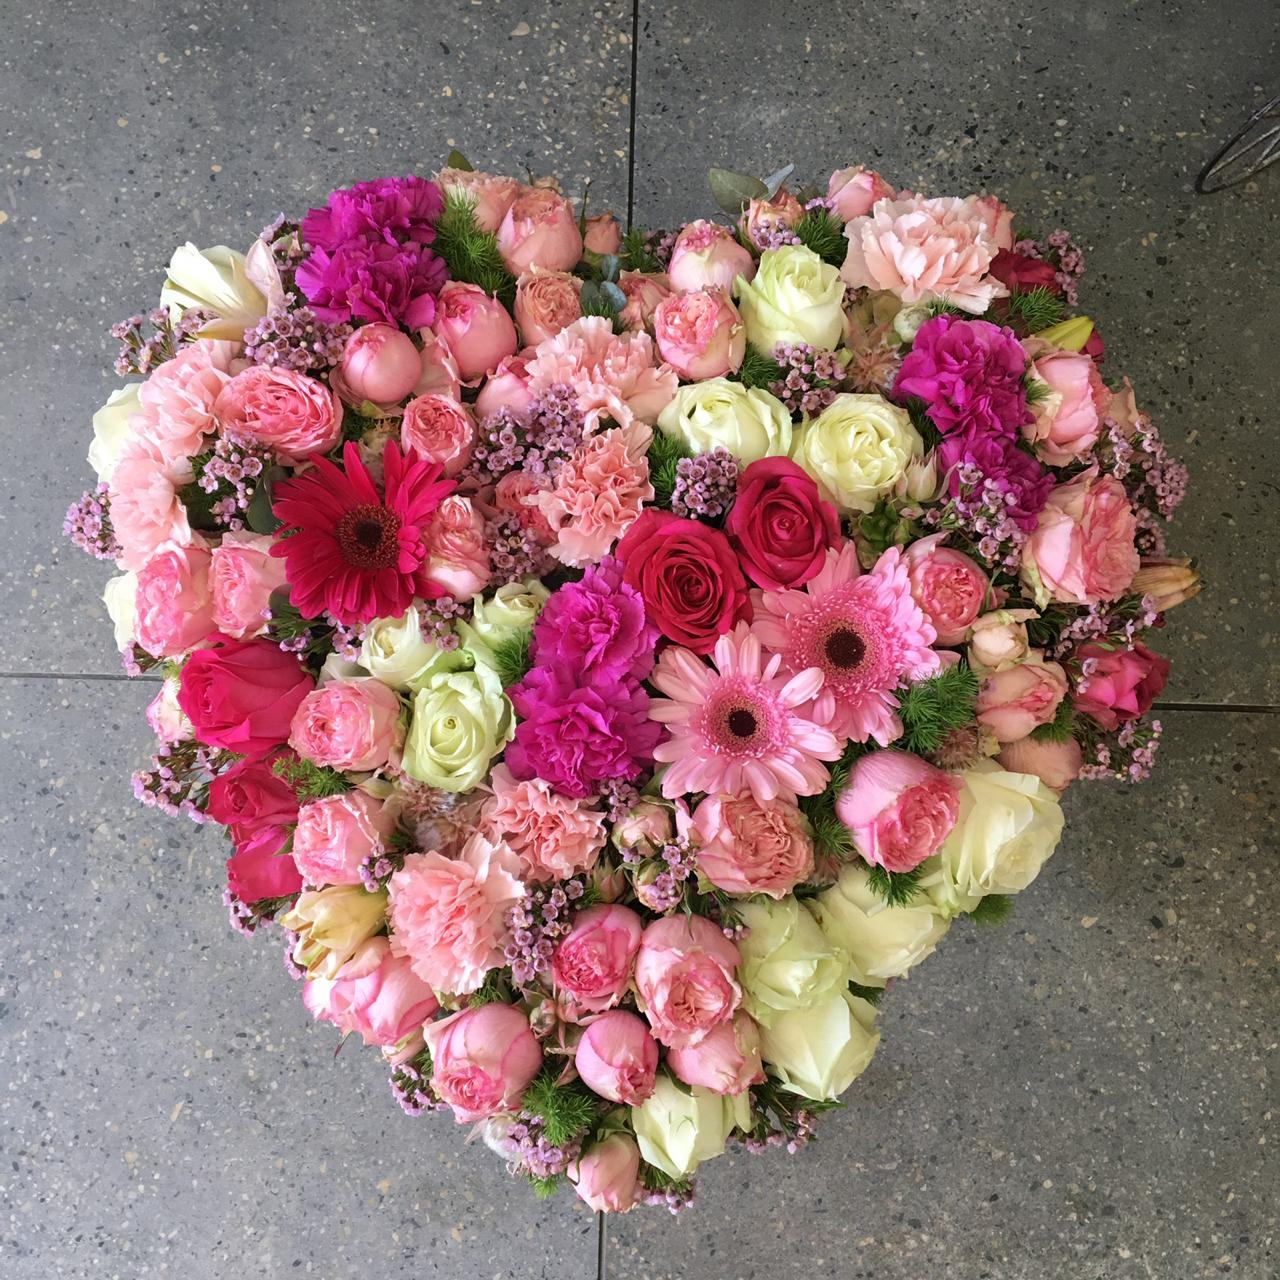 Flowers placed in the shape of a heart